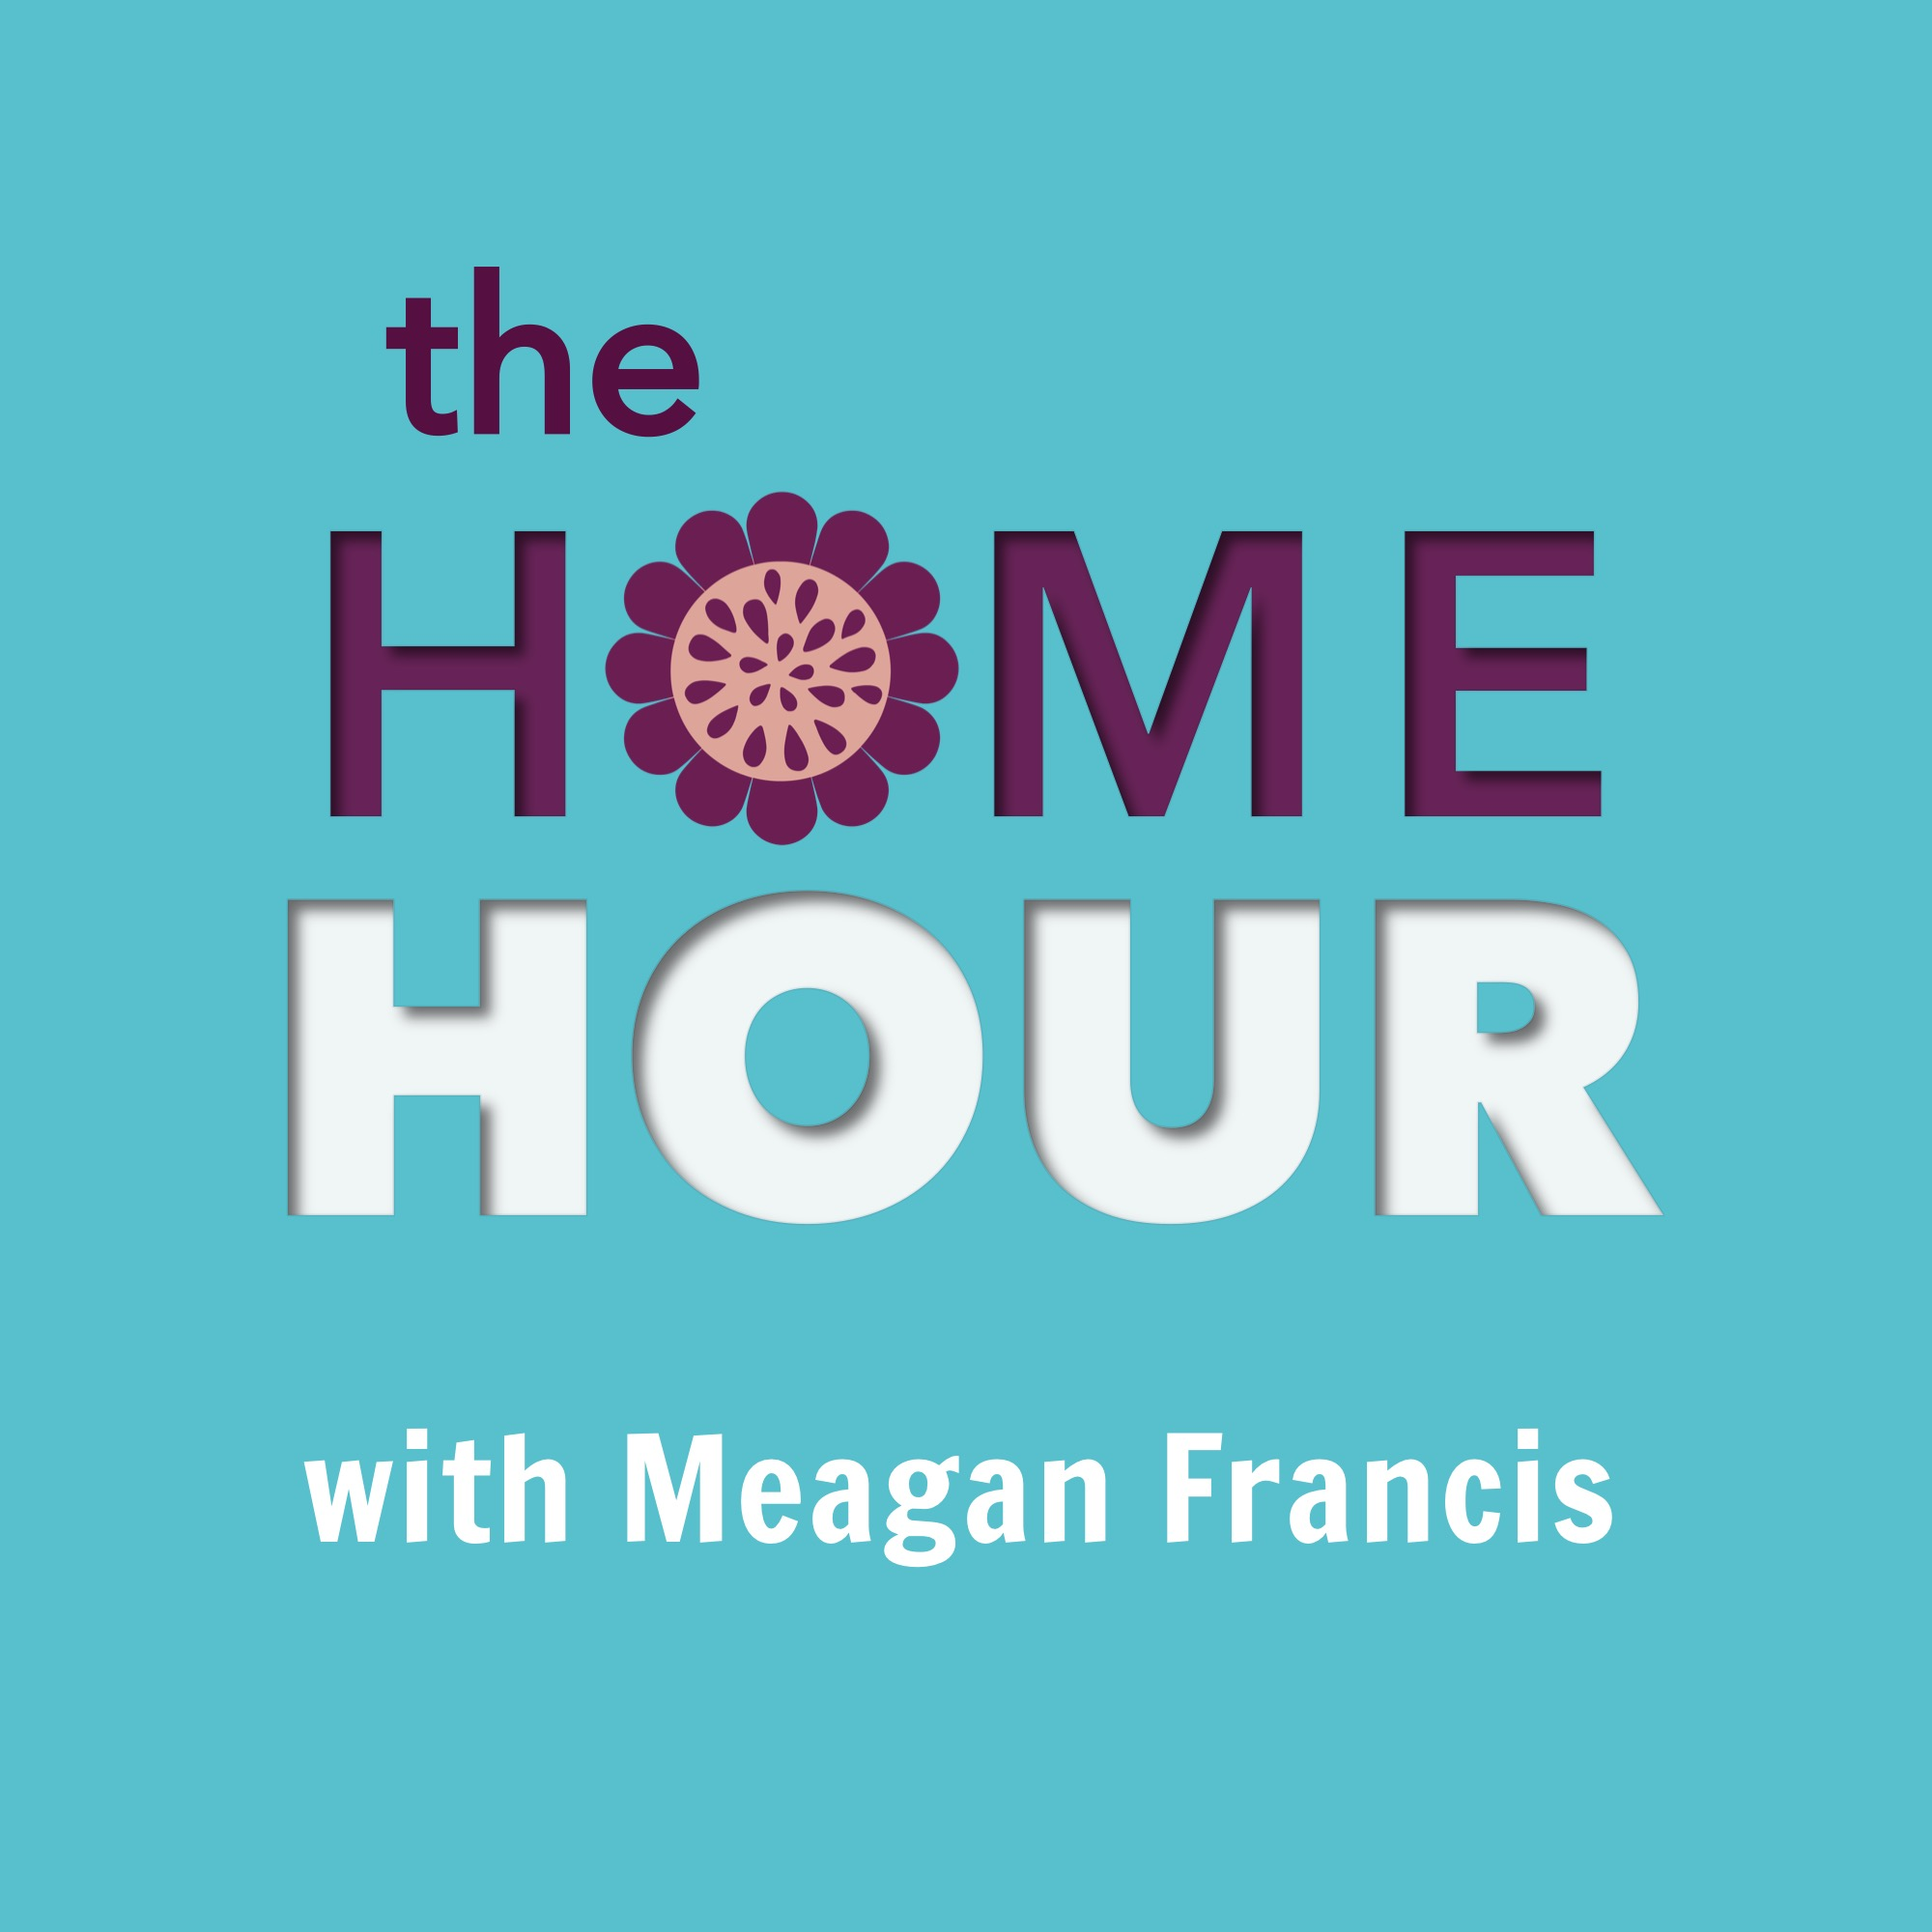 The Home Hour with Meagan Francis